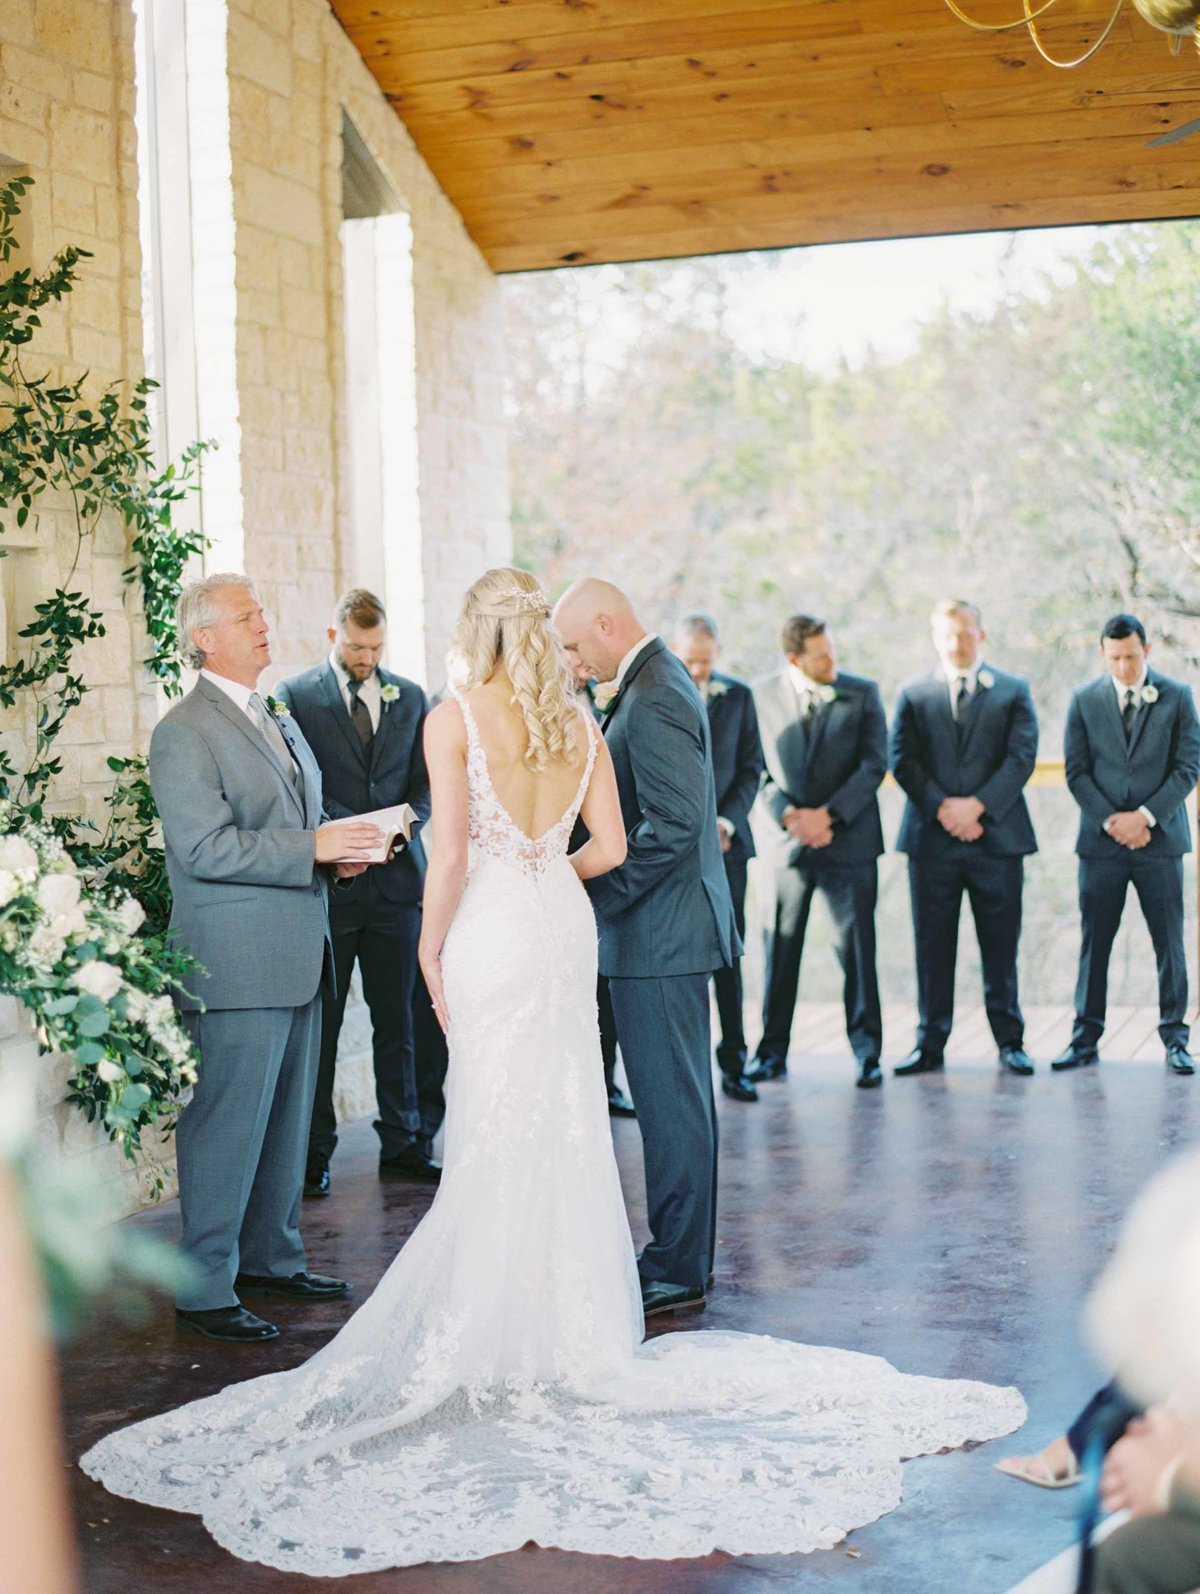 Angel_owens_photography_wedding68